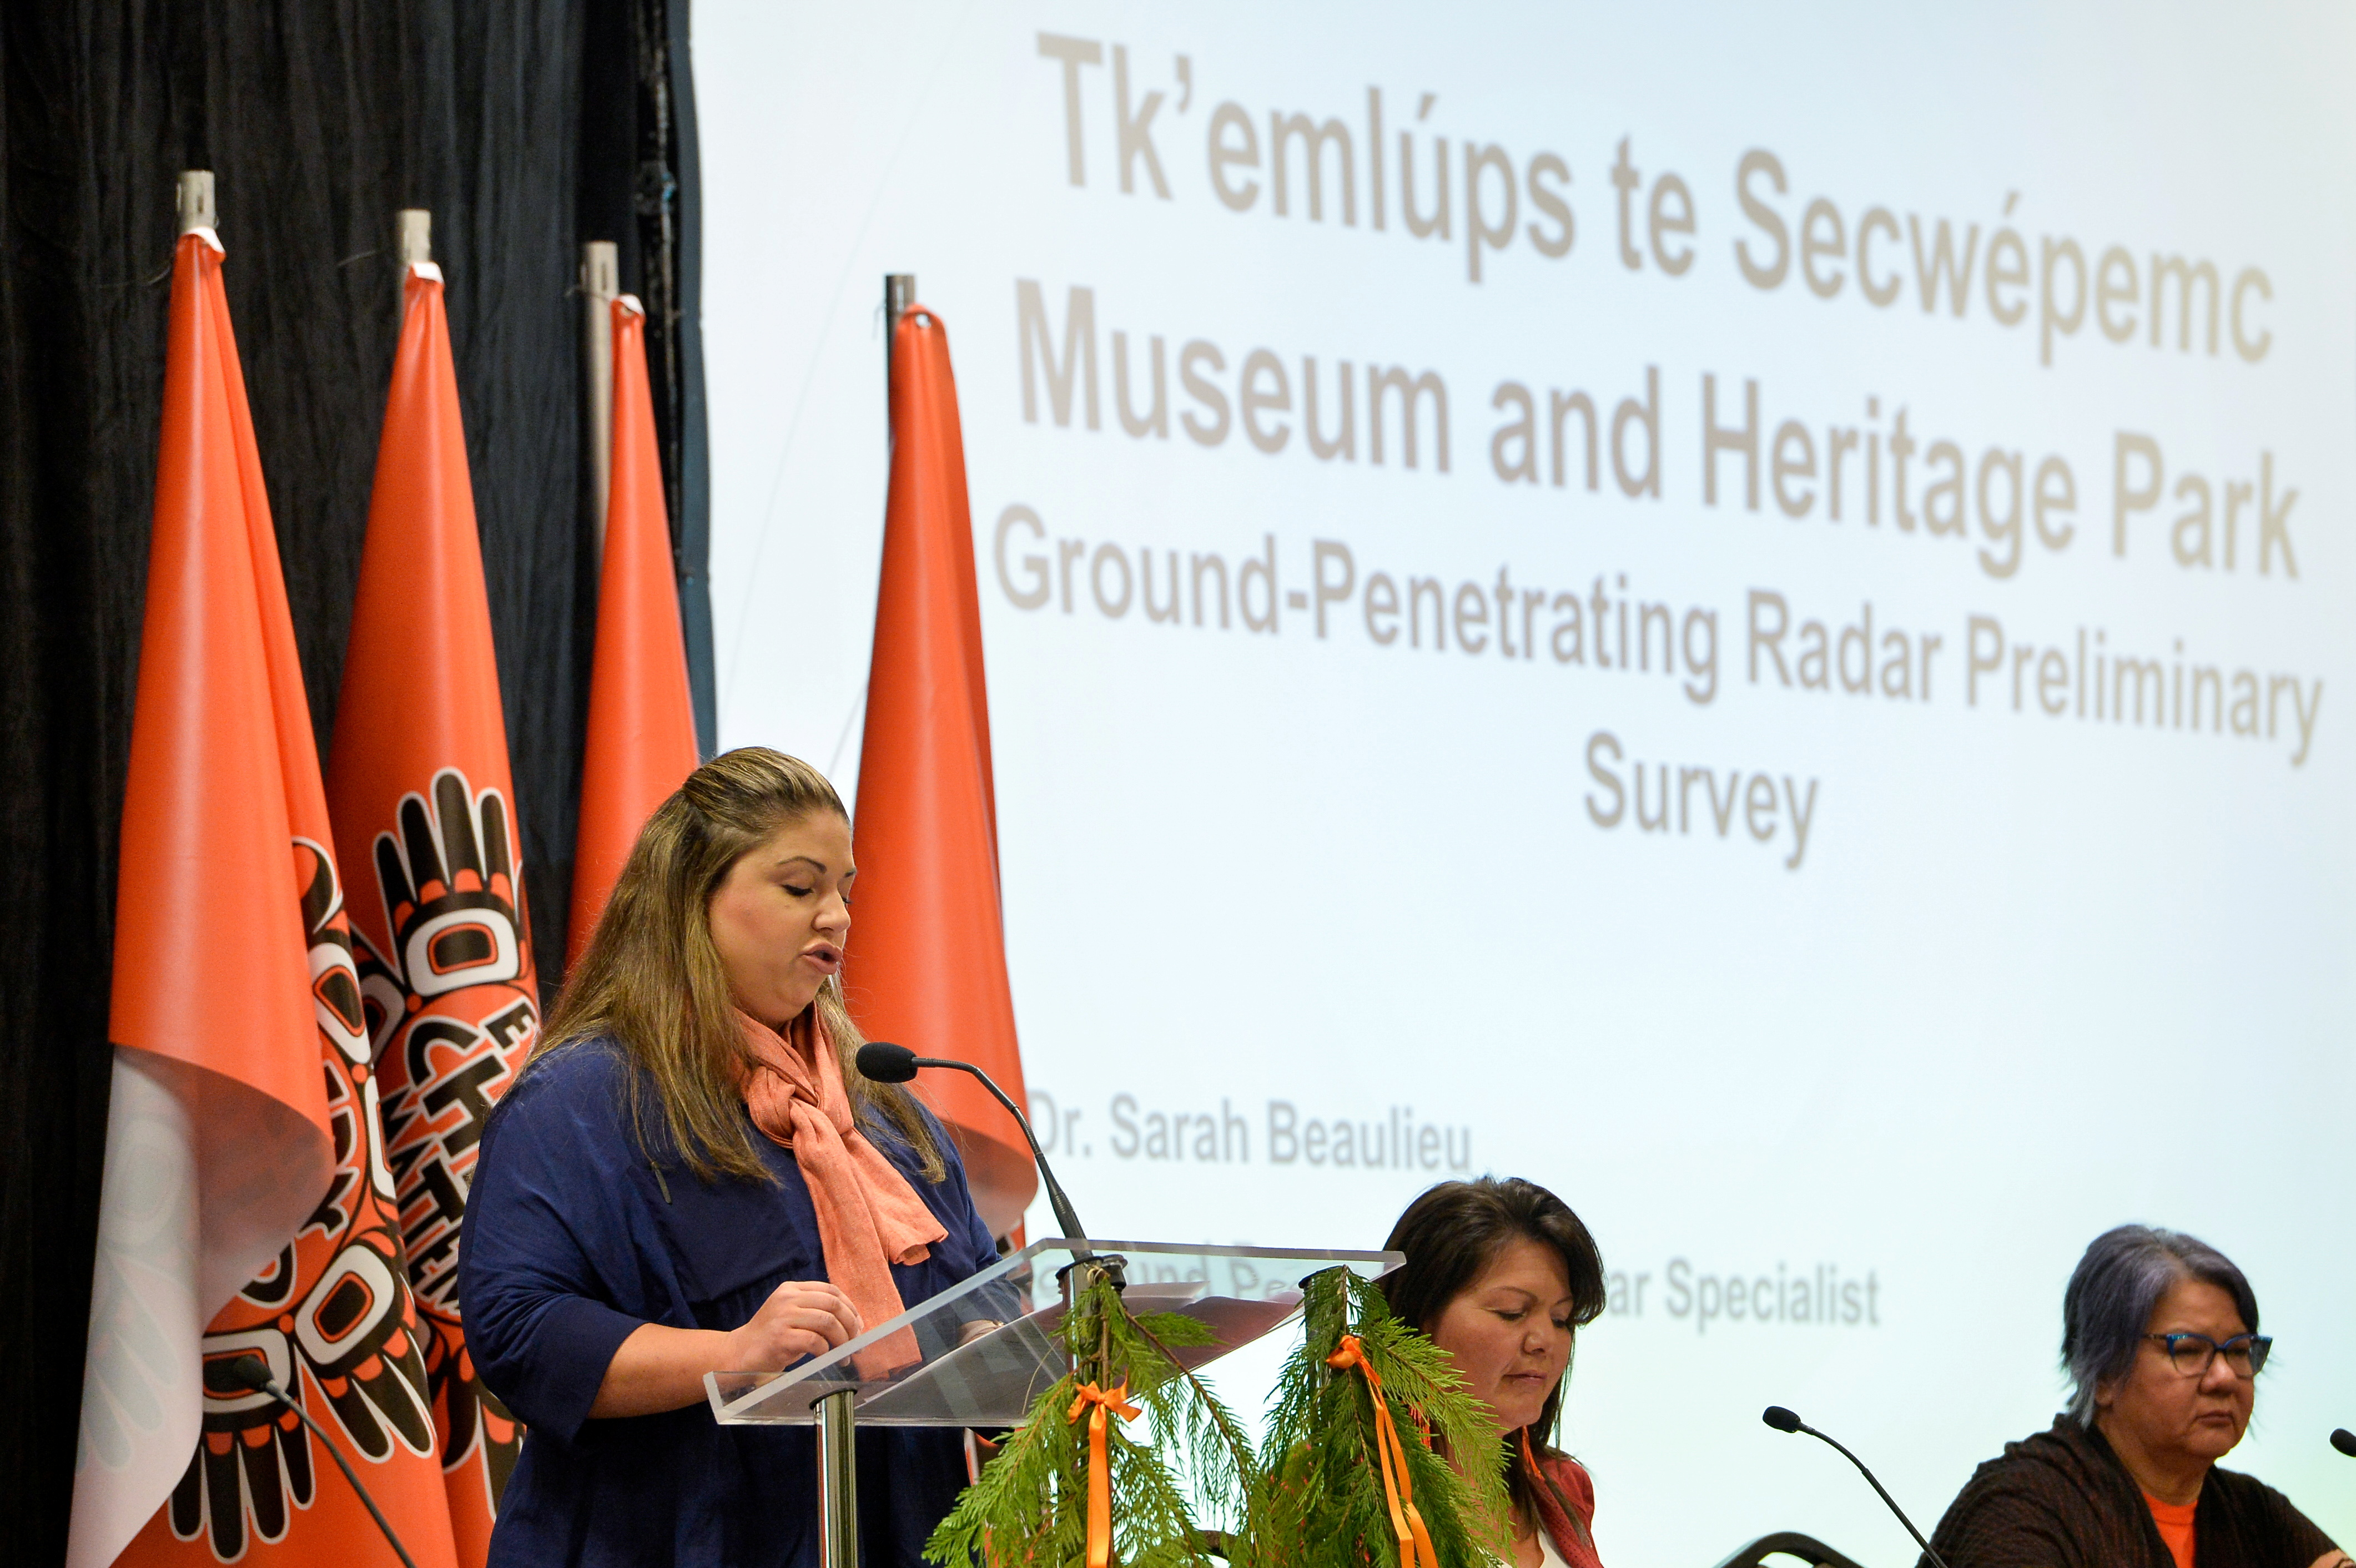 GPR specialist Dr. Sarah Beaulieu presents the findings on 215 unmarked graves discovered at Kamloops Indian Residential School in Kamloops, British Columbia, Canada, July 15, 2021.  REUTERS/Jennifer Gauthier